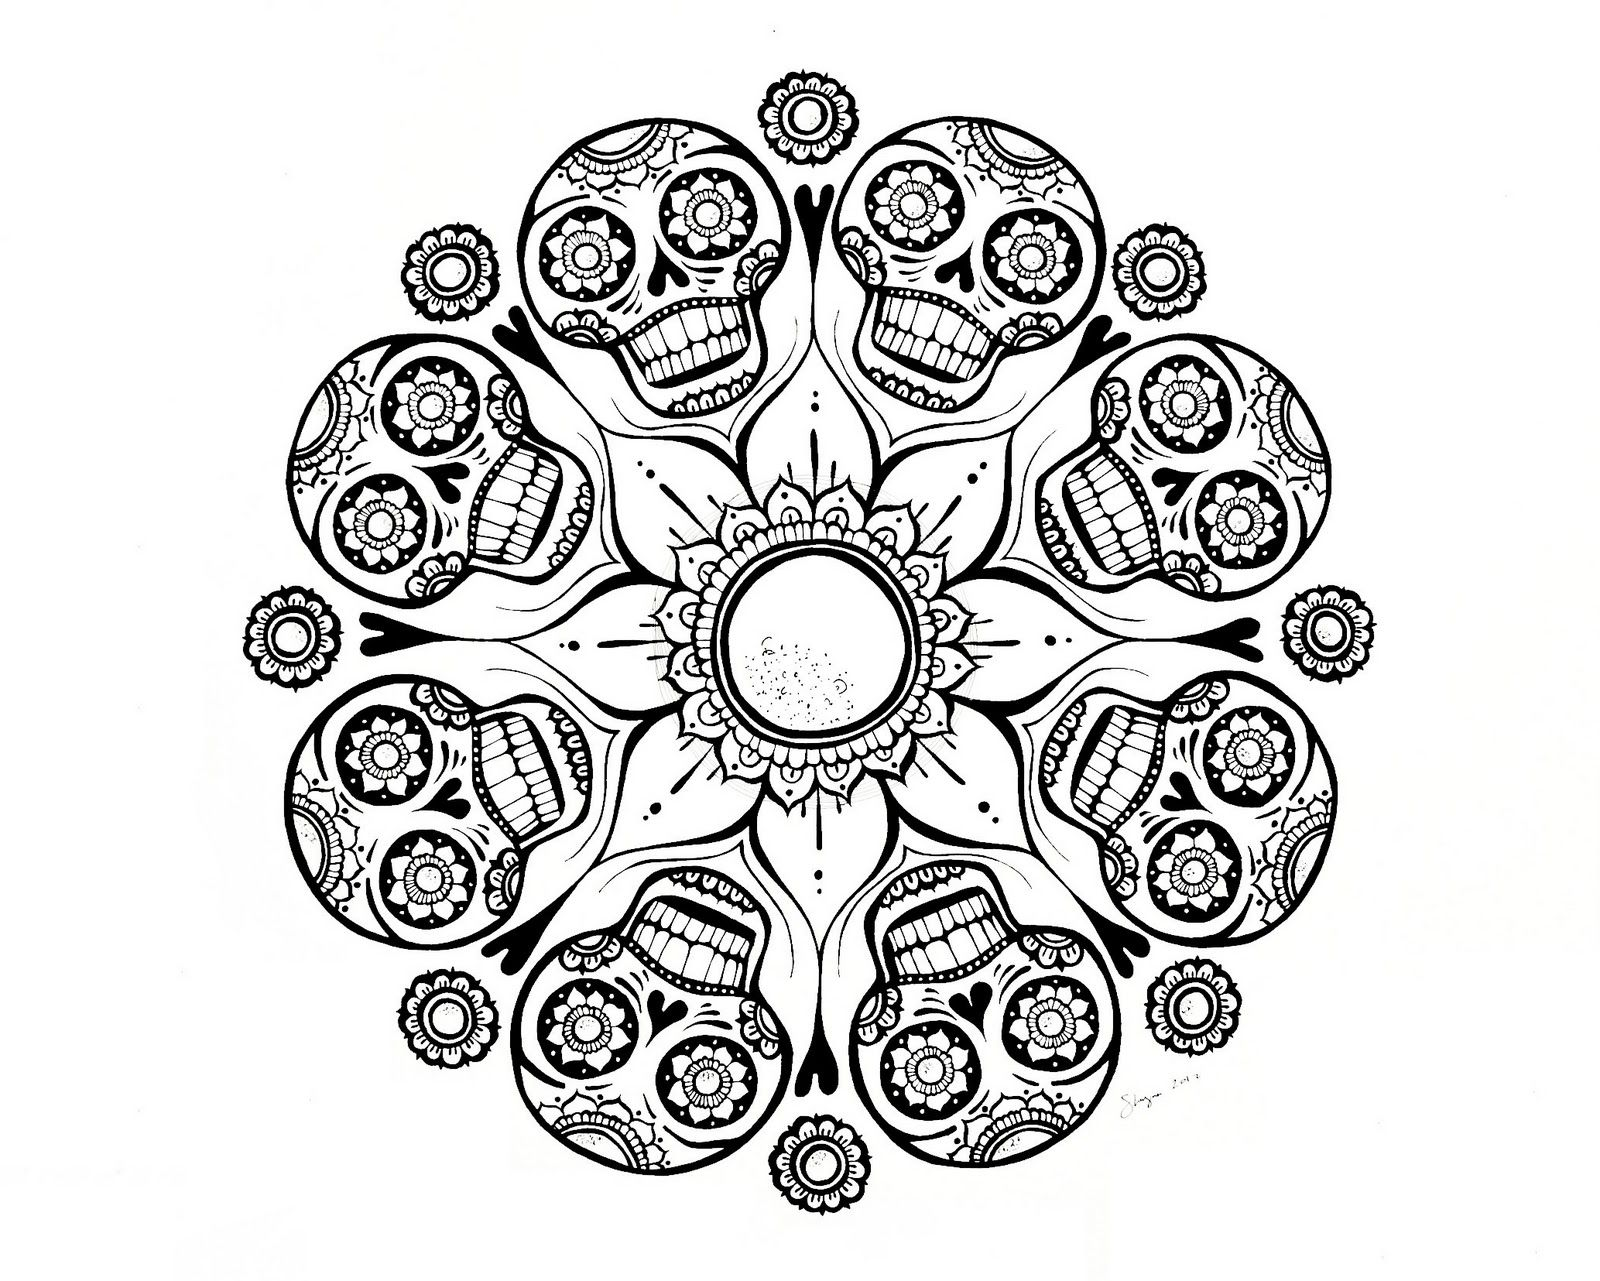 Hard mandala coloring pages for adults - Skull Mandala Coloring Pages Am Selling Pdf Downloads In My Etsy Shop For 4